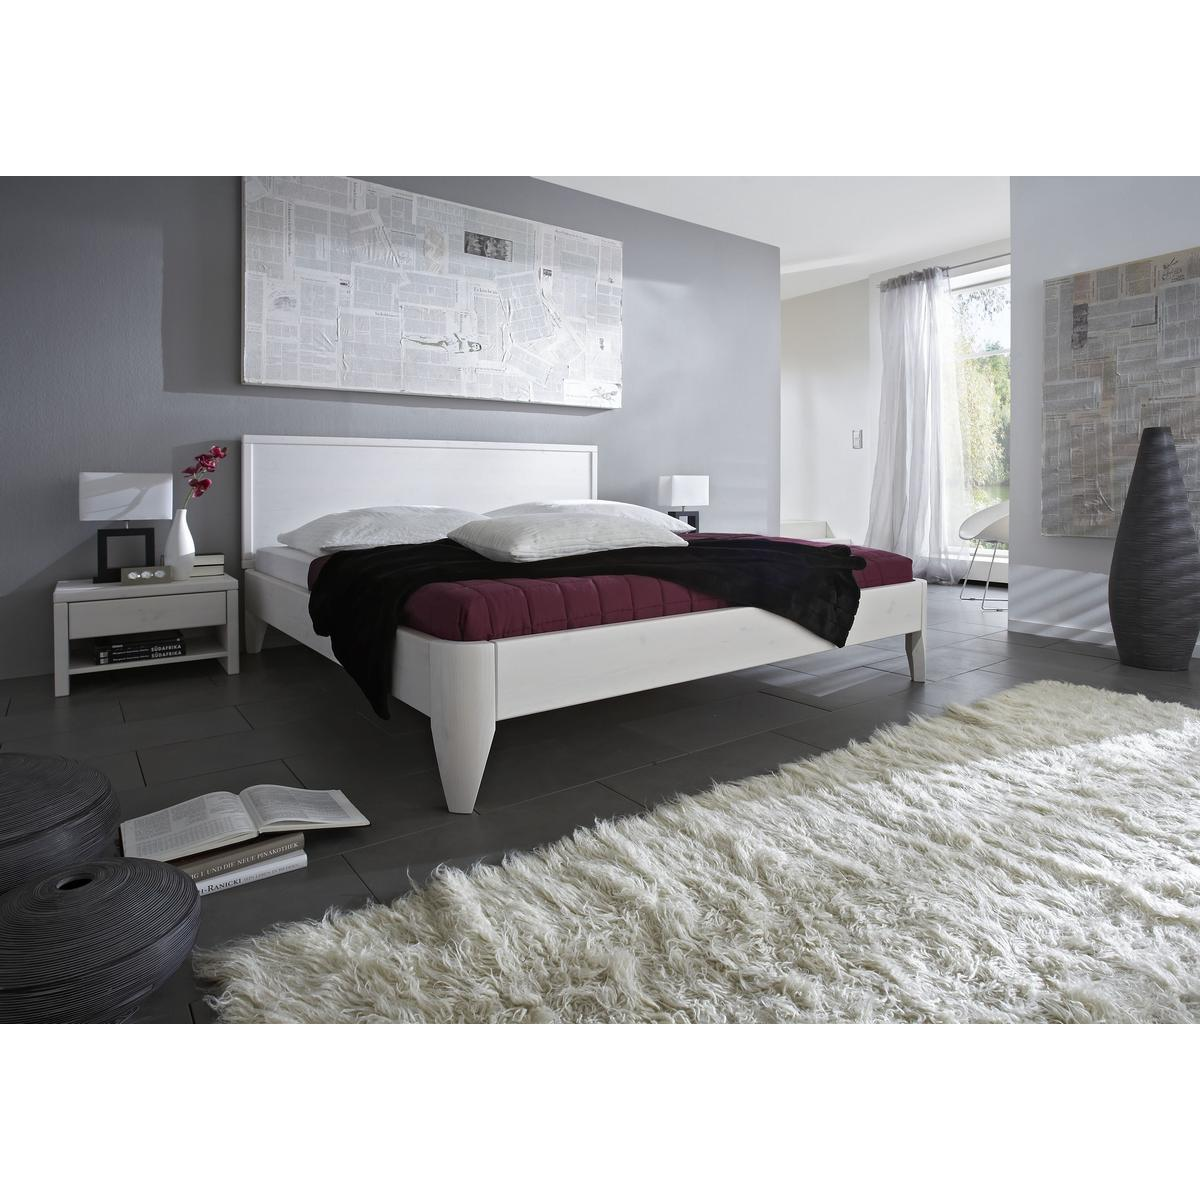 kiefer bett 140x200 finest bett x kiefer gelaugt eyesopen co avec bett schubladen et echtholz. Black Bedroom Furniture Sets. Home Design Ideas